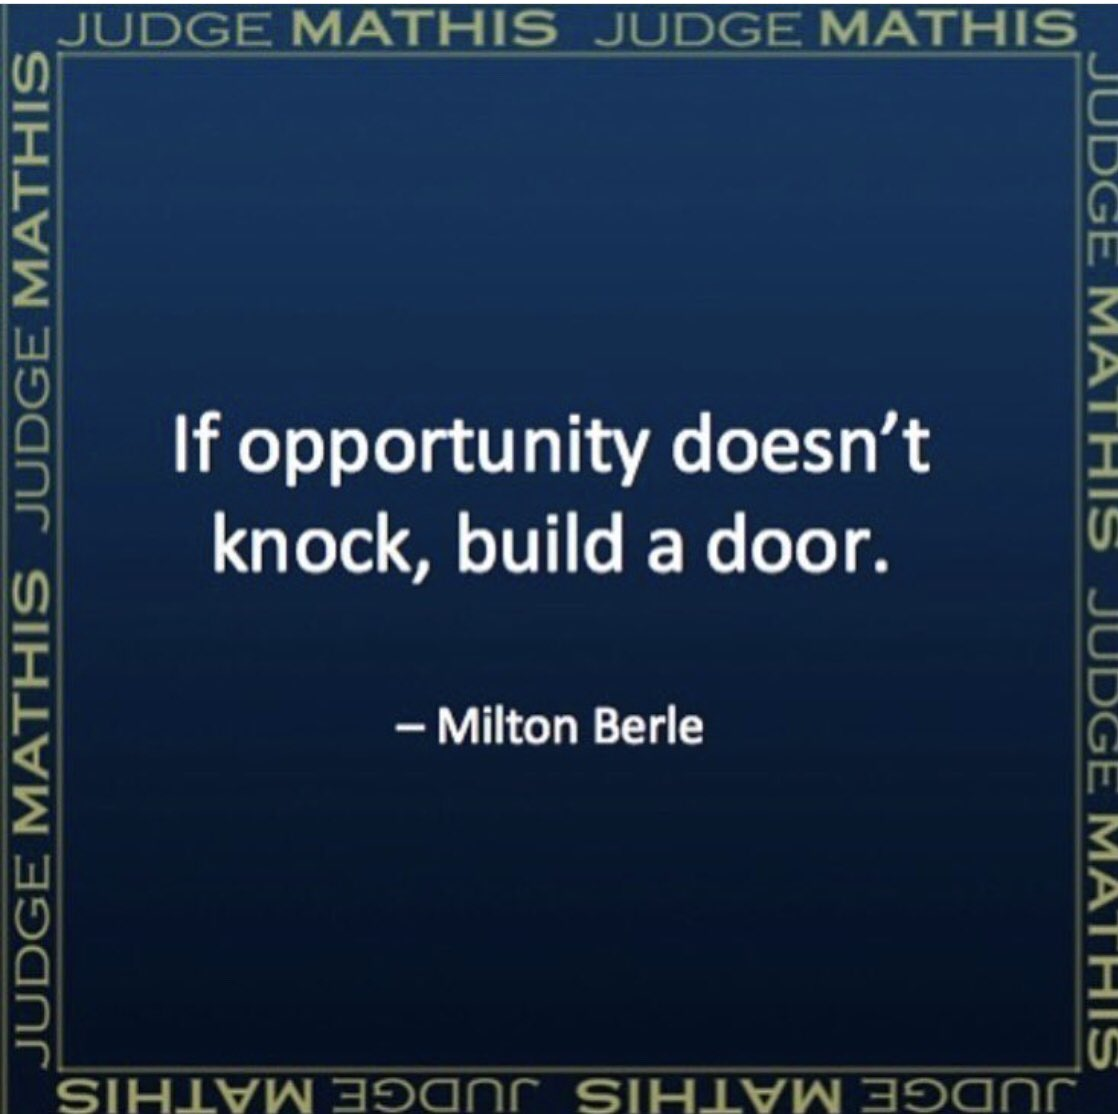 Judge Greg Mathis On Twitter If Opportunity Doesnt Knock Build